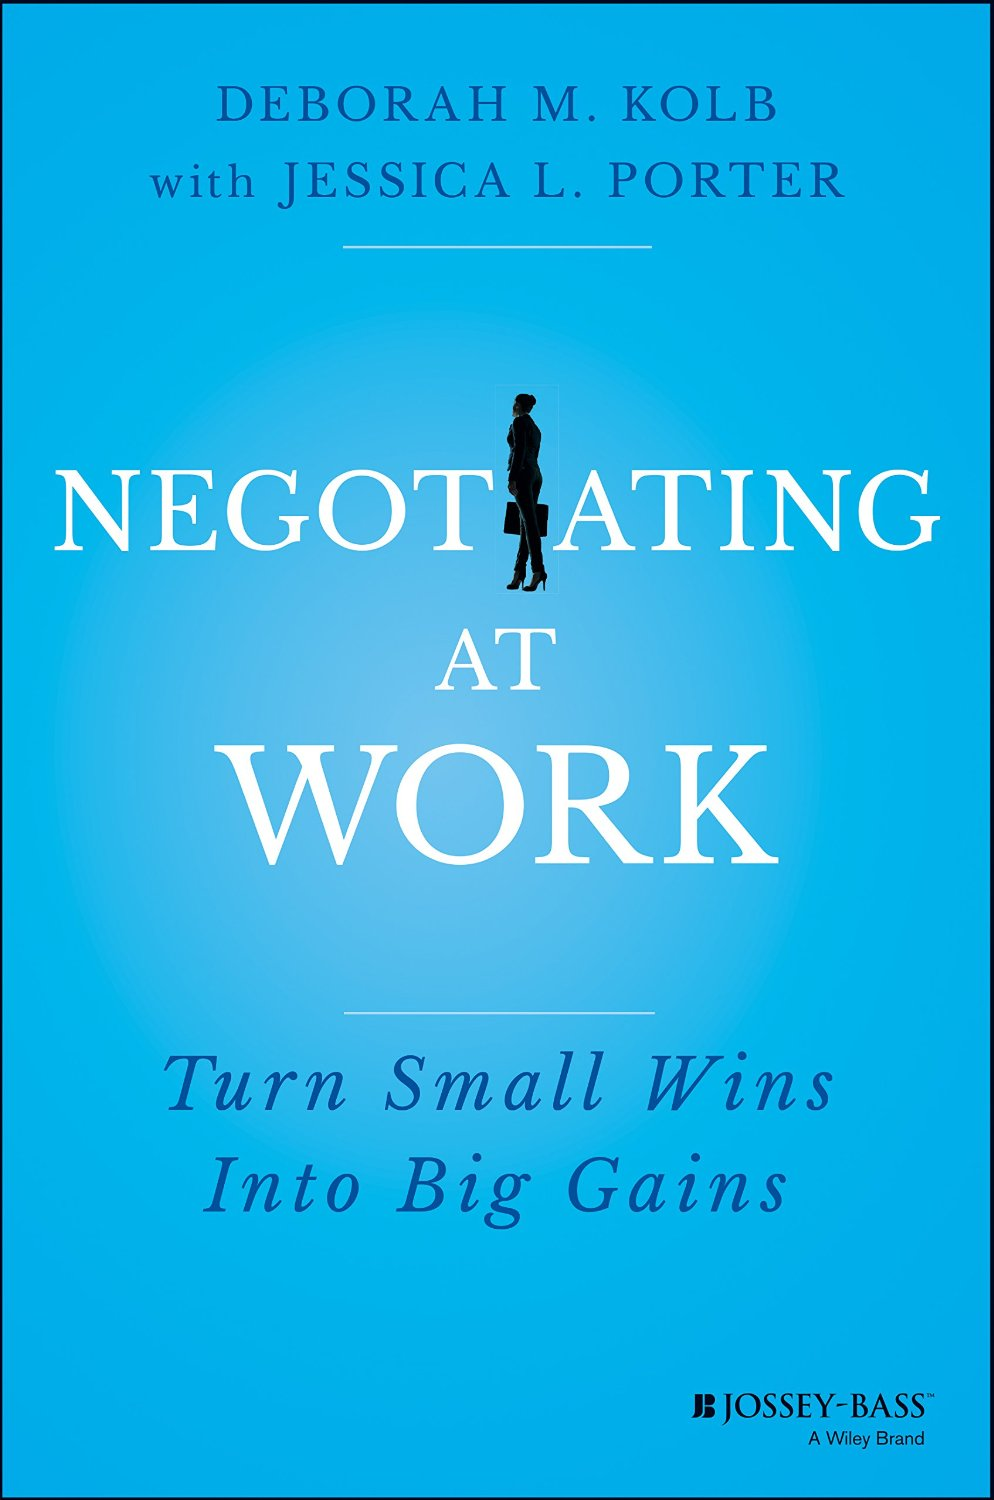 Negotiating at Work: Turn Small Wins Into Big Gains with Jessica L. Porter.  (Wiley, 2015)